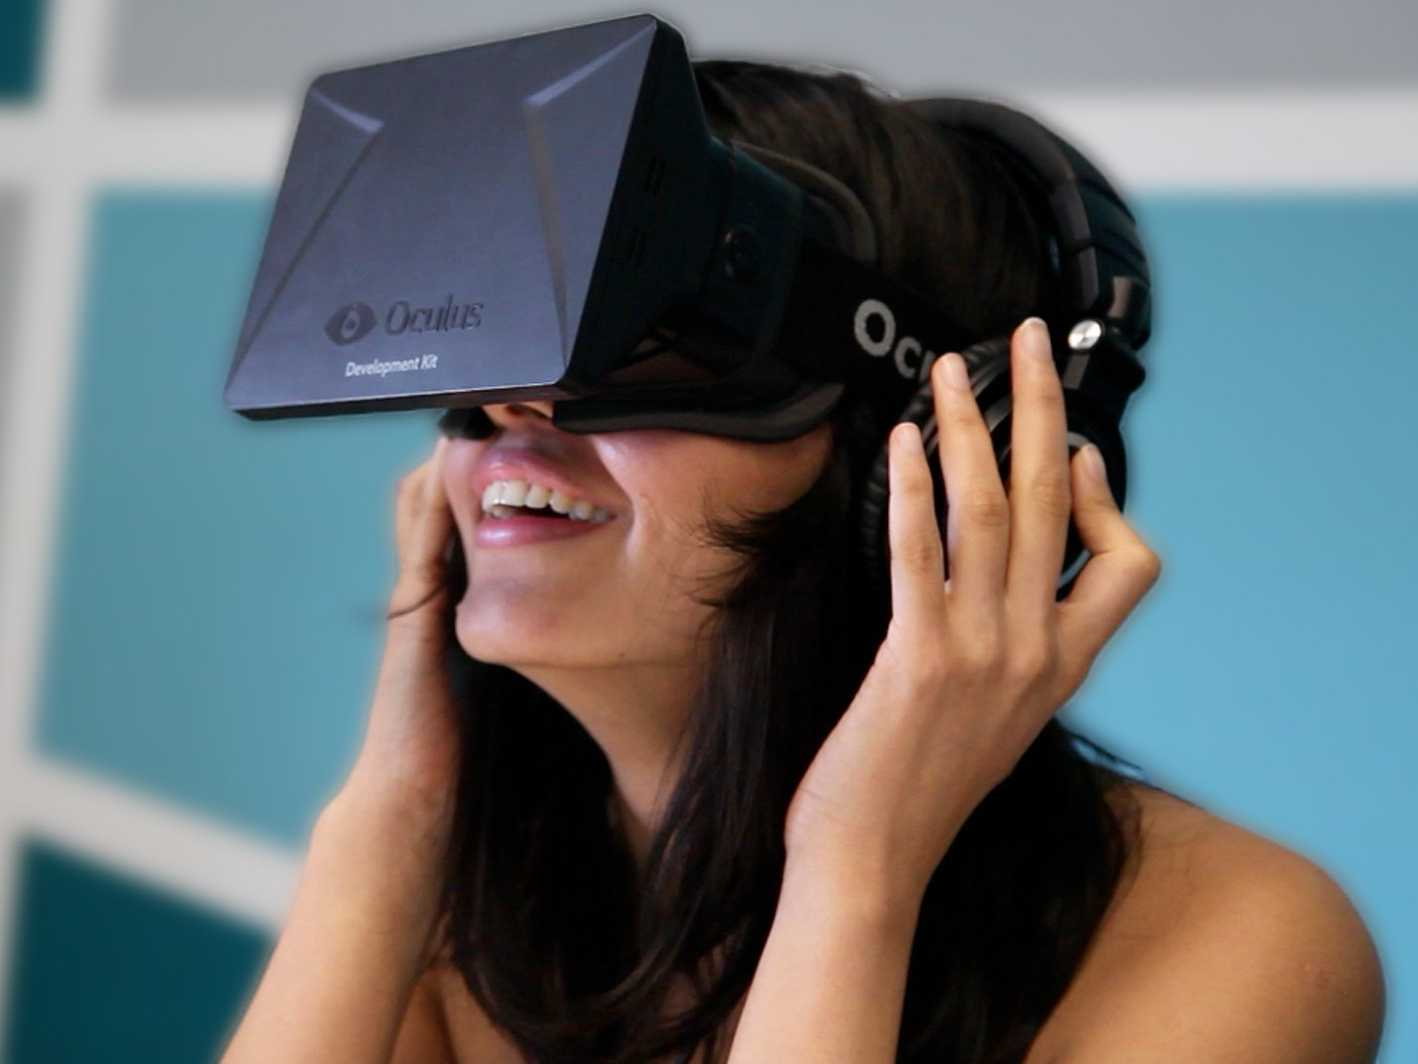 Oculus Rift: An example of a virtual reality headset.